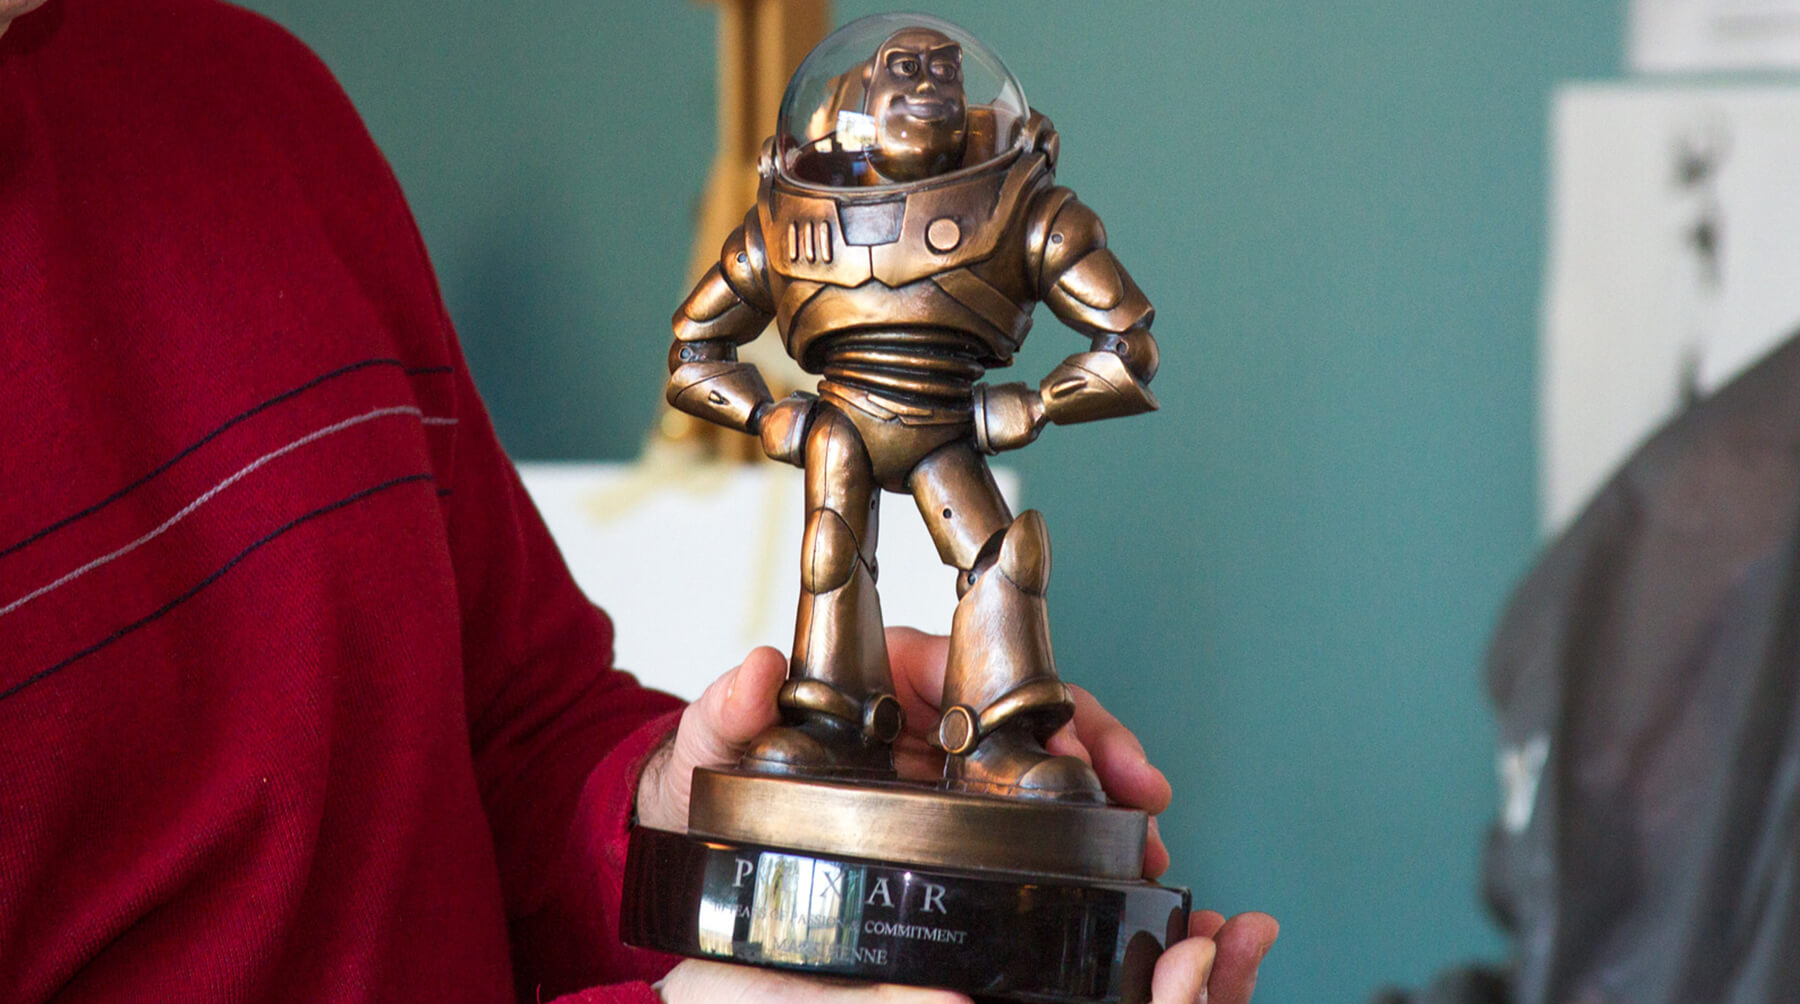 DigiPen Digital Arts lecturer Mark Henne shows his Pixar Award for Passionate Commitment, a bronze Buzz Lightyear trophy